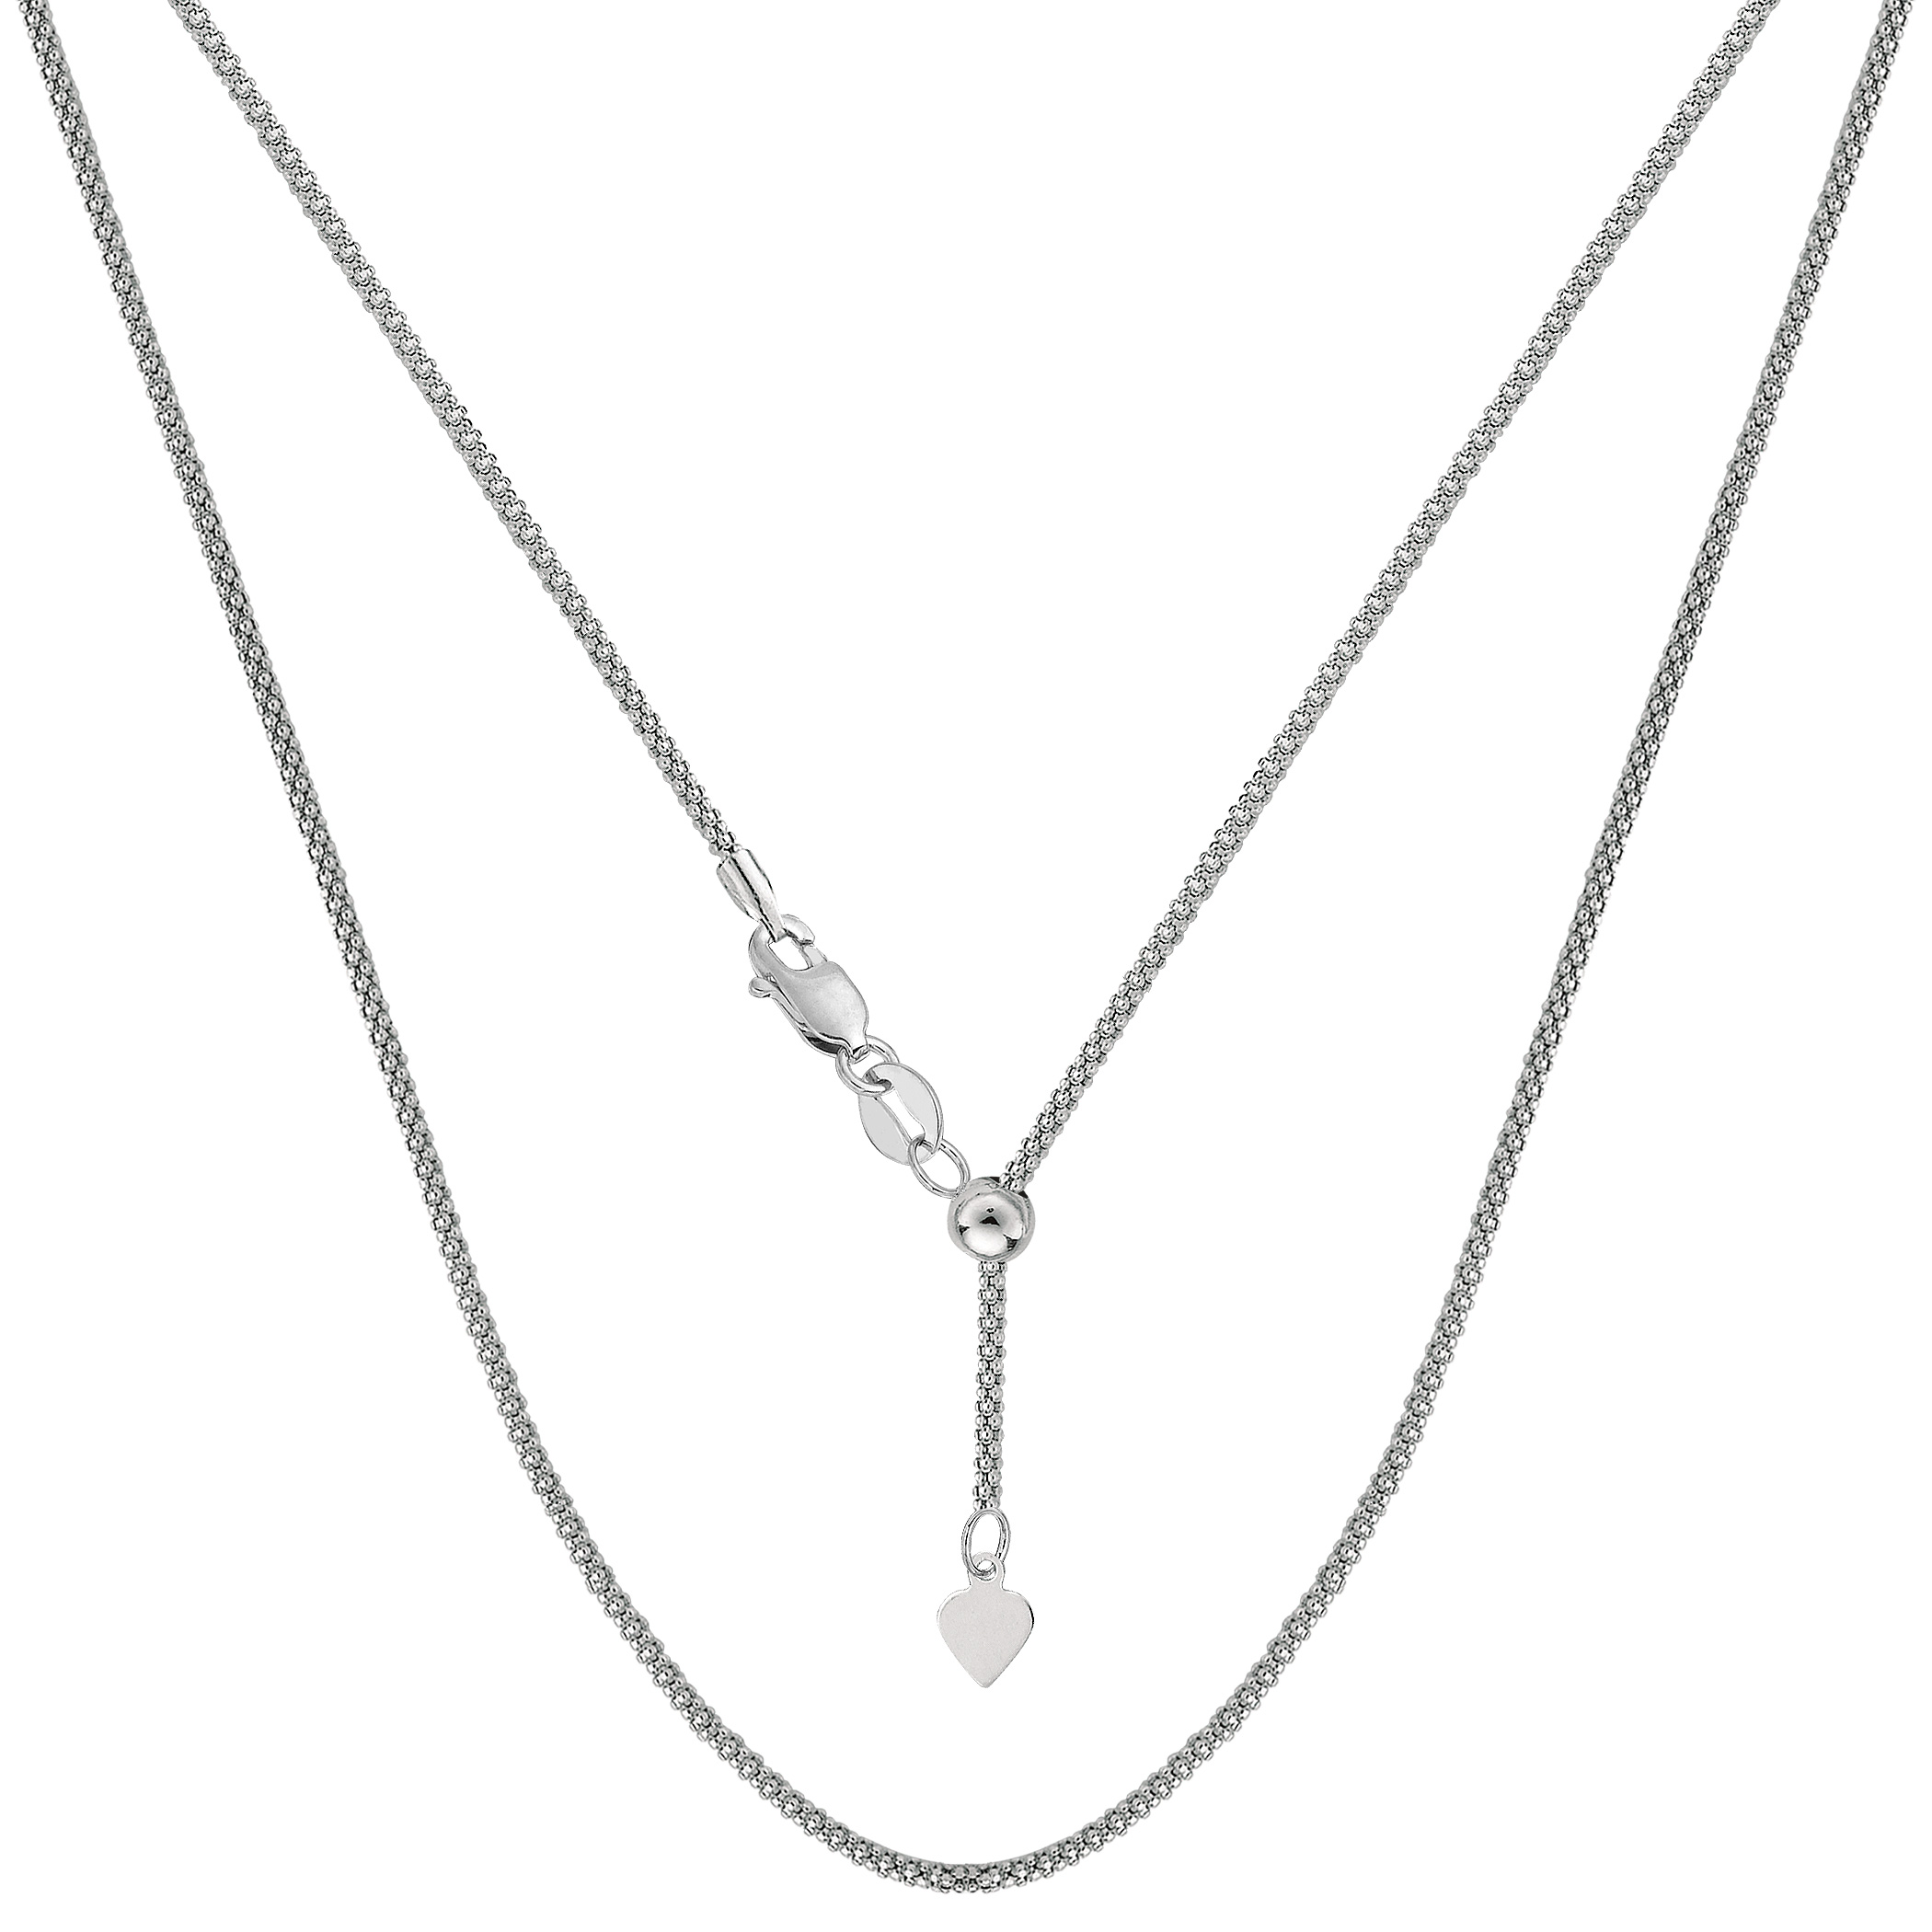 Sterling Silver Rhodium Plated 22  Sliding Adjustable Popcorn Chain Necklace, 1.5mm Using it by itself or combining it with charms and pendants, this 22 inch long adjustable popcorn style chain is a perfect addition to any jewelry fashionista collection.